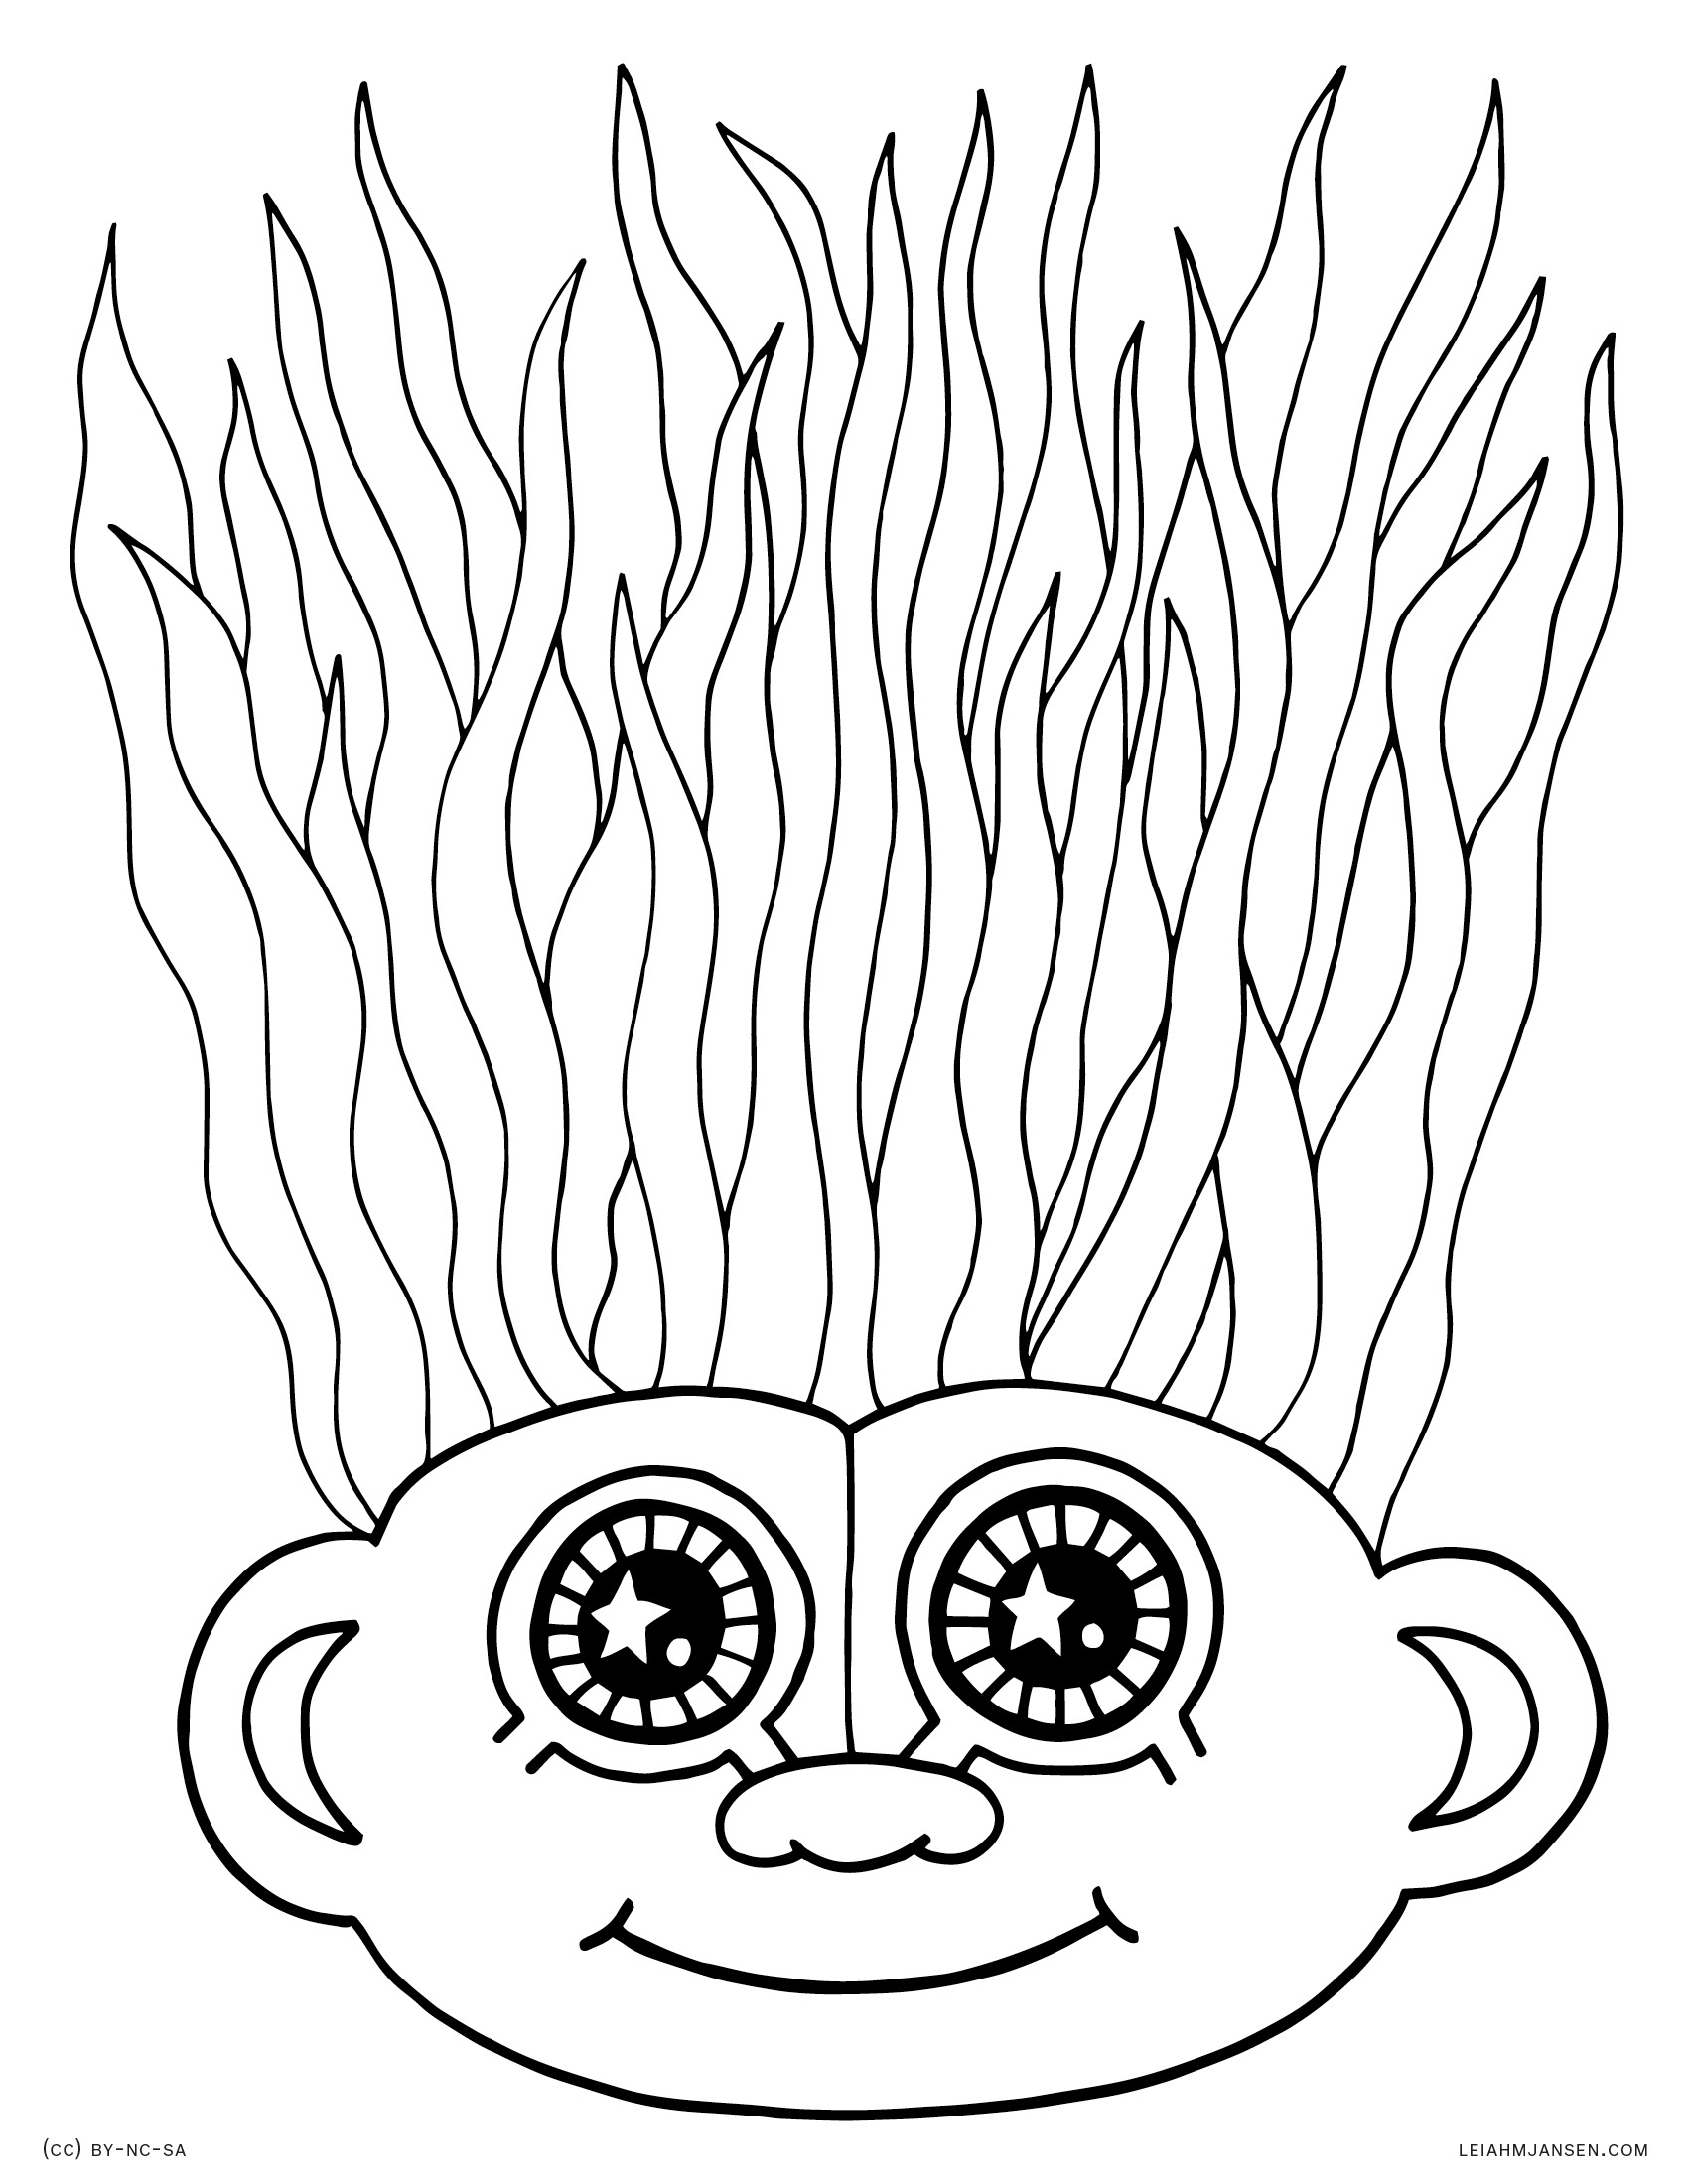 Free coloring pages of trolls - Troll Hair Troll Doll With Crazy Hair Free Printable Coloring Page